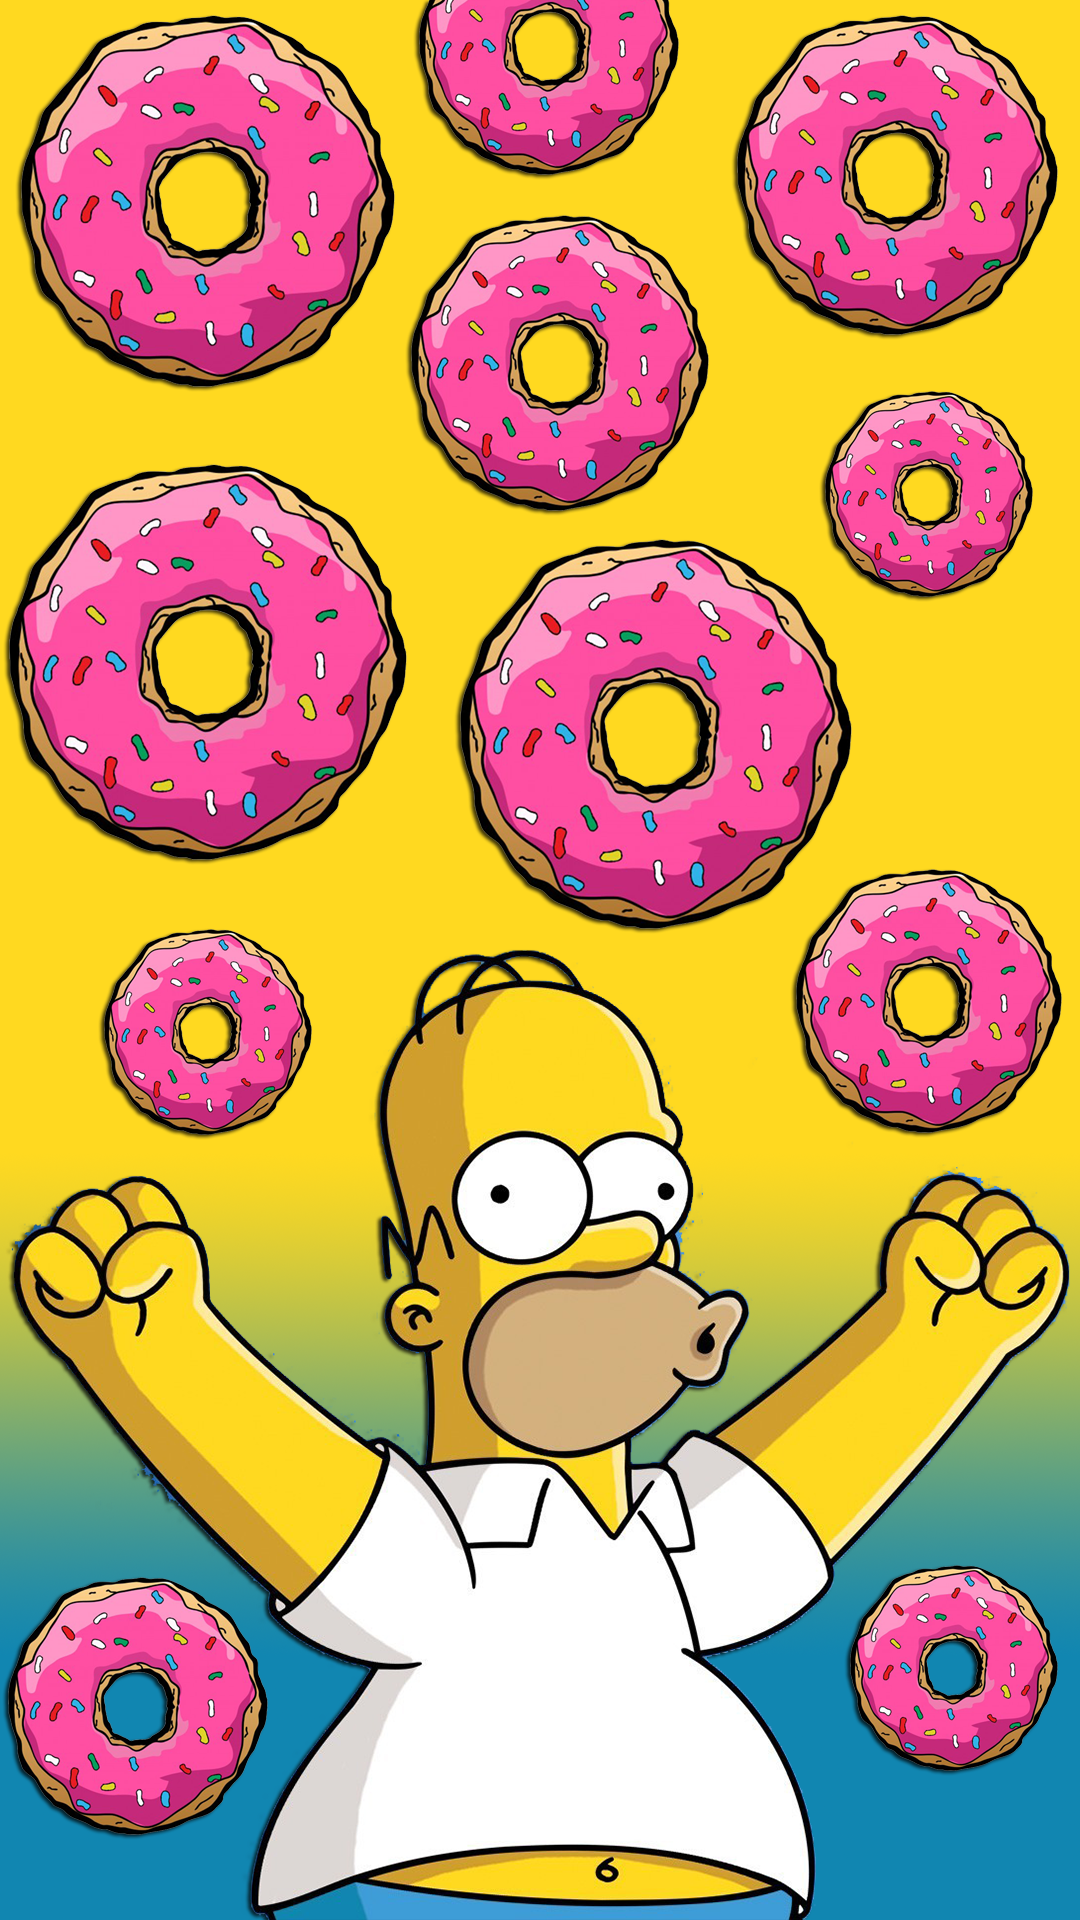 1080x1920 Donut Wallpapers